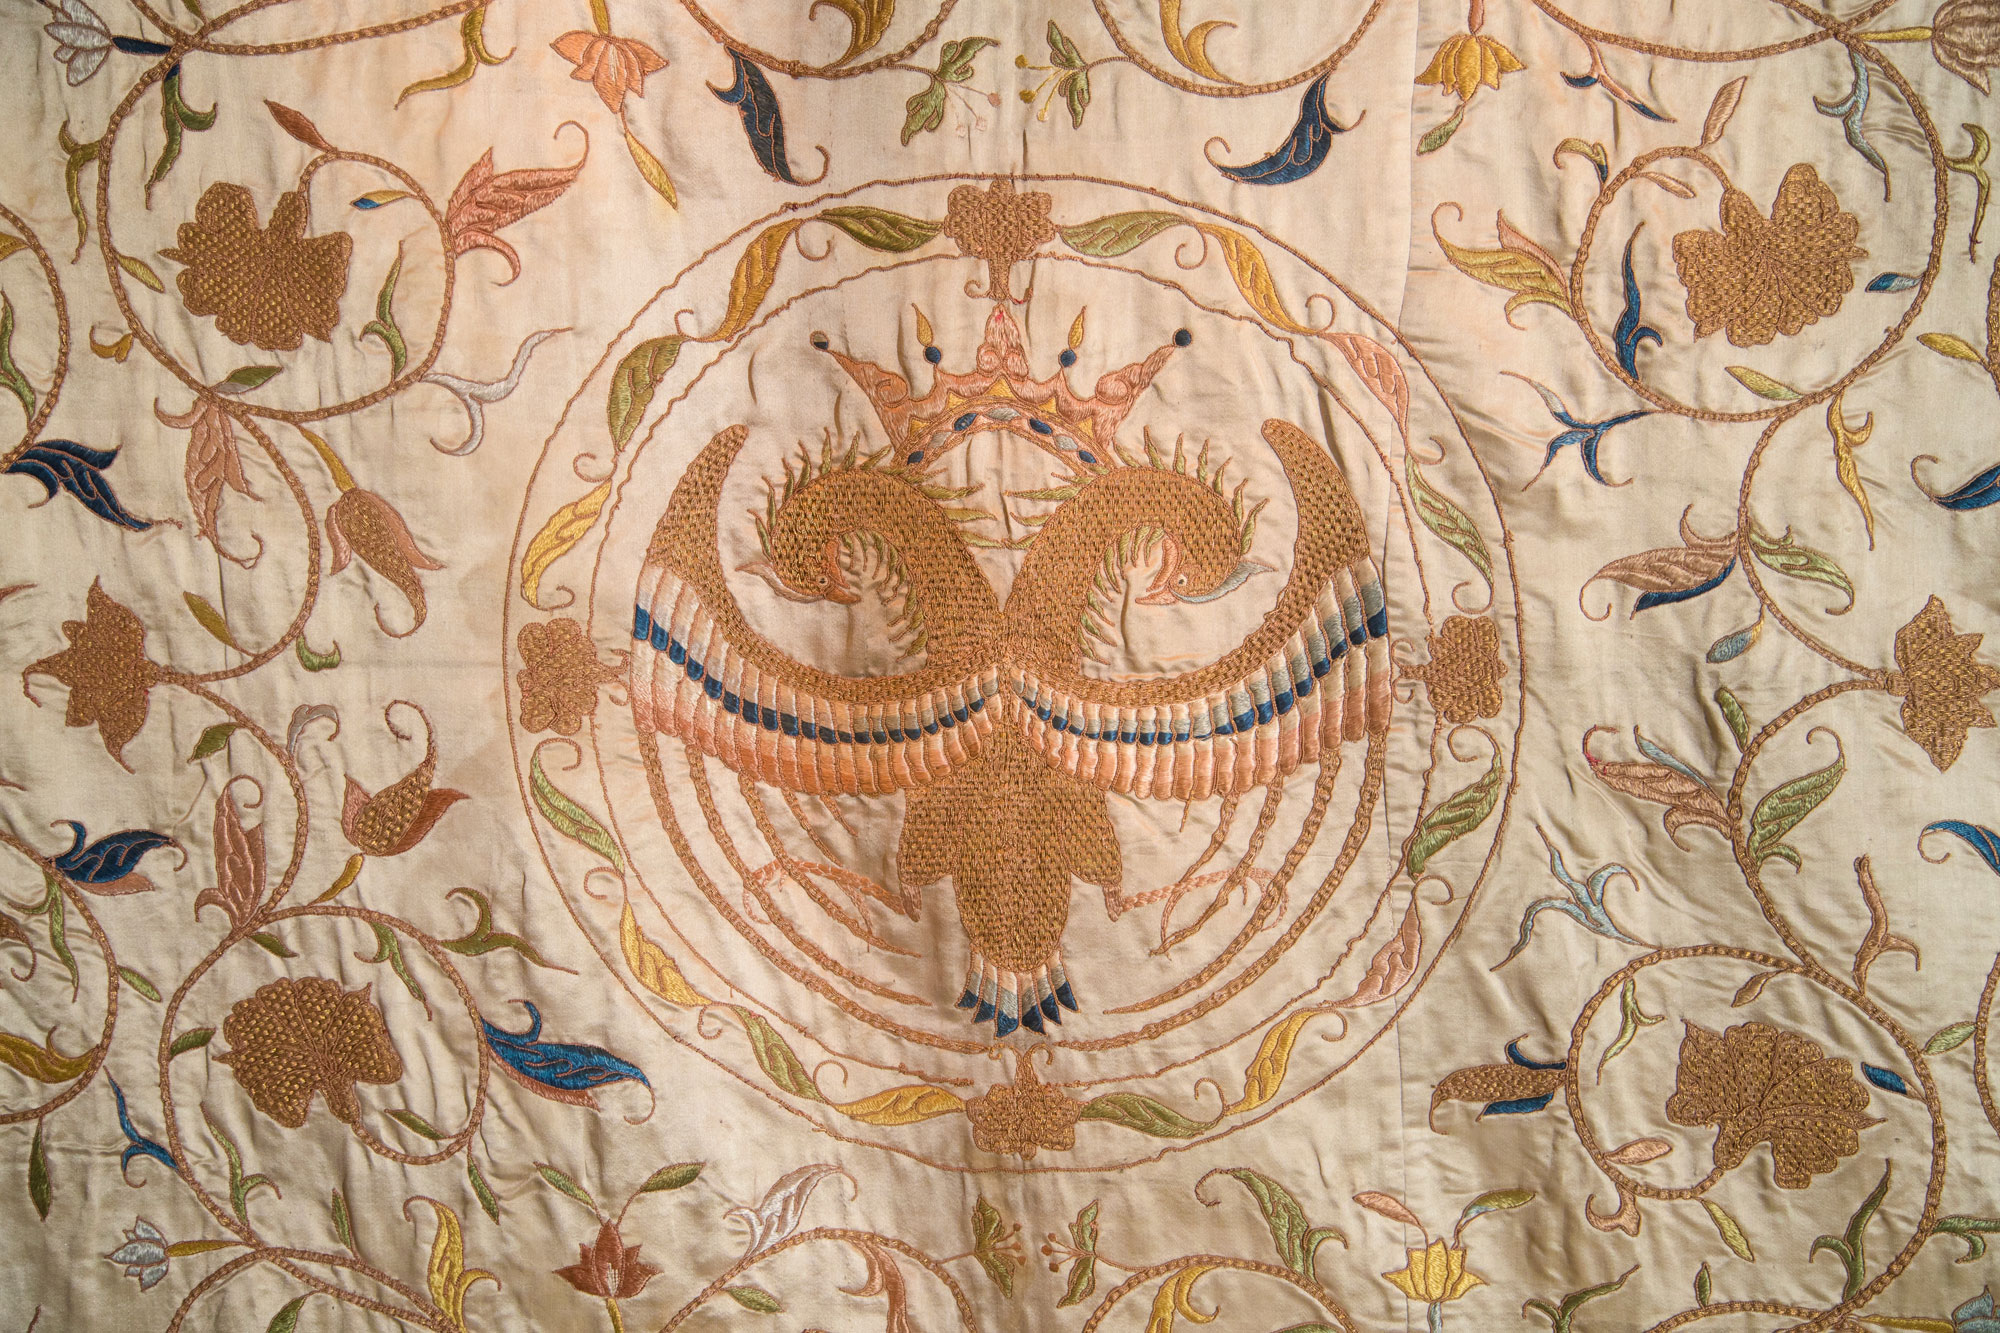 close up photograph of embroidered animal and foliage on sheet of fabric